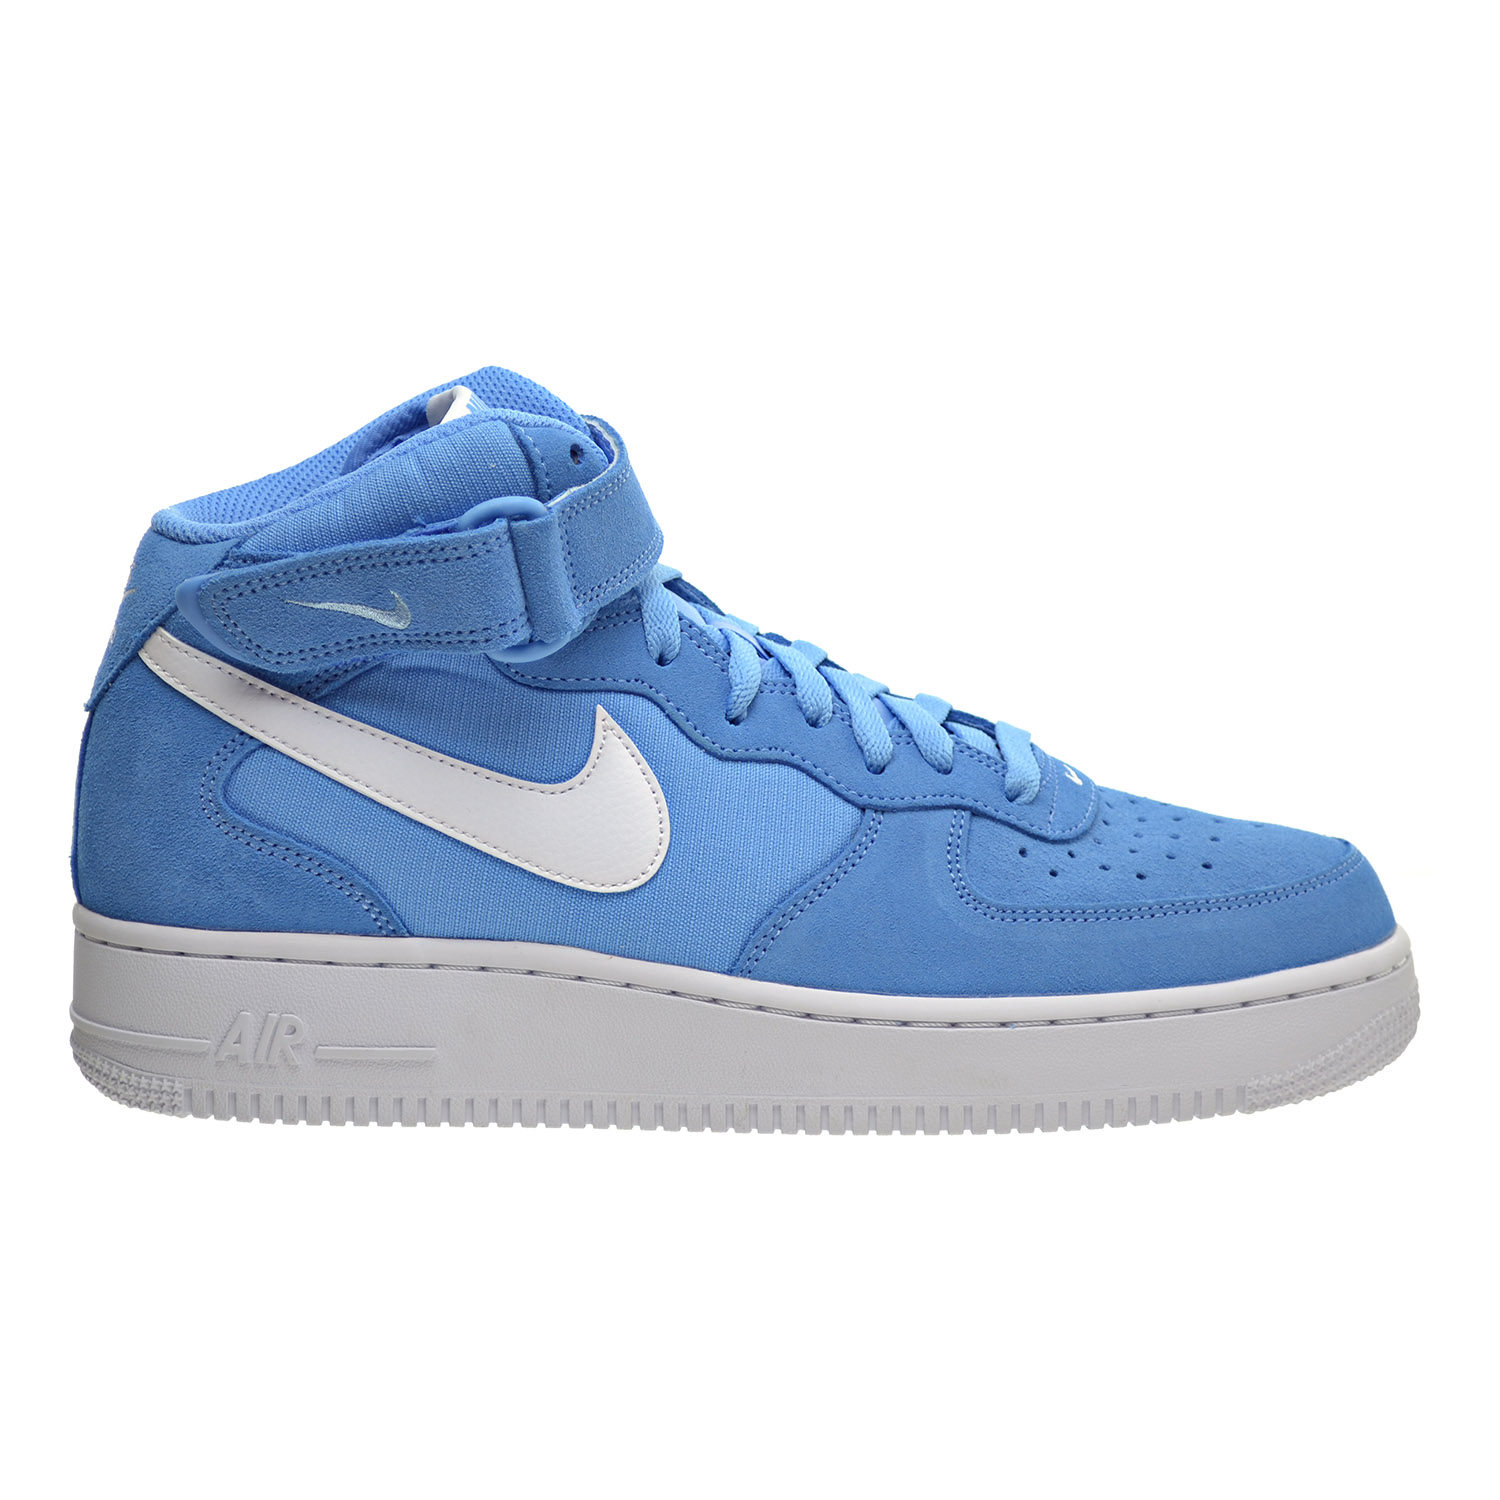 Nike Air Force 1 Mid celeste